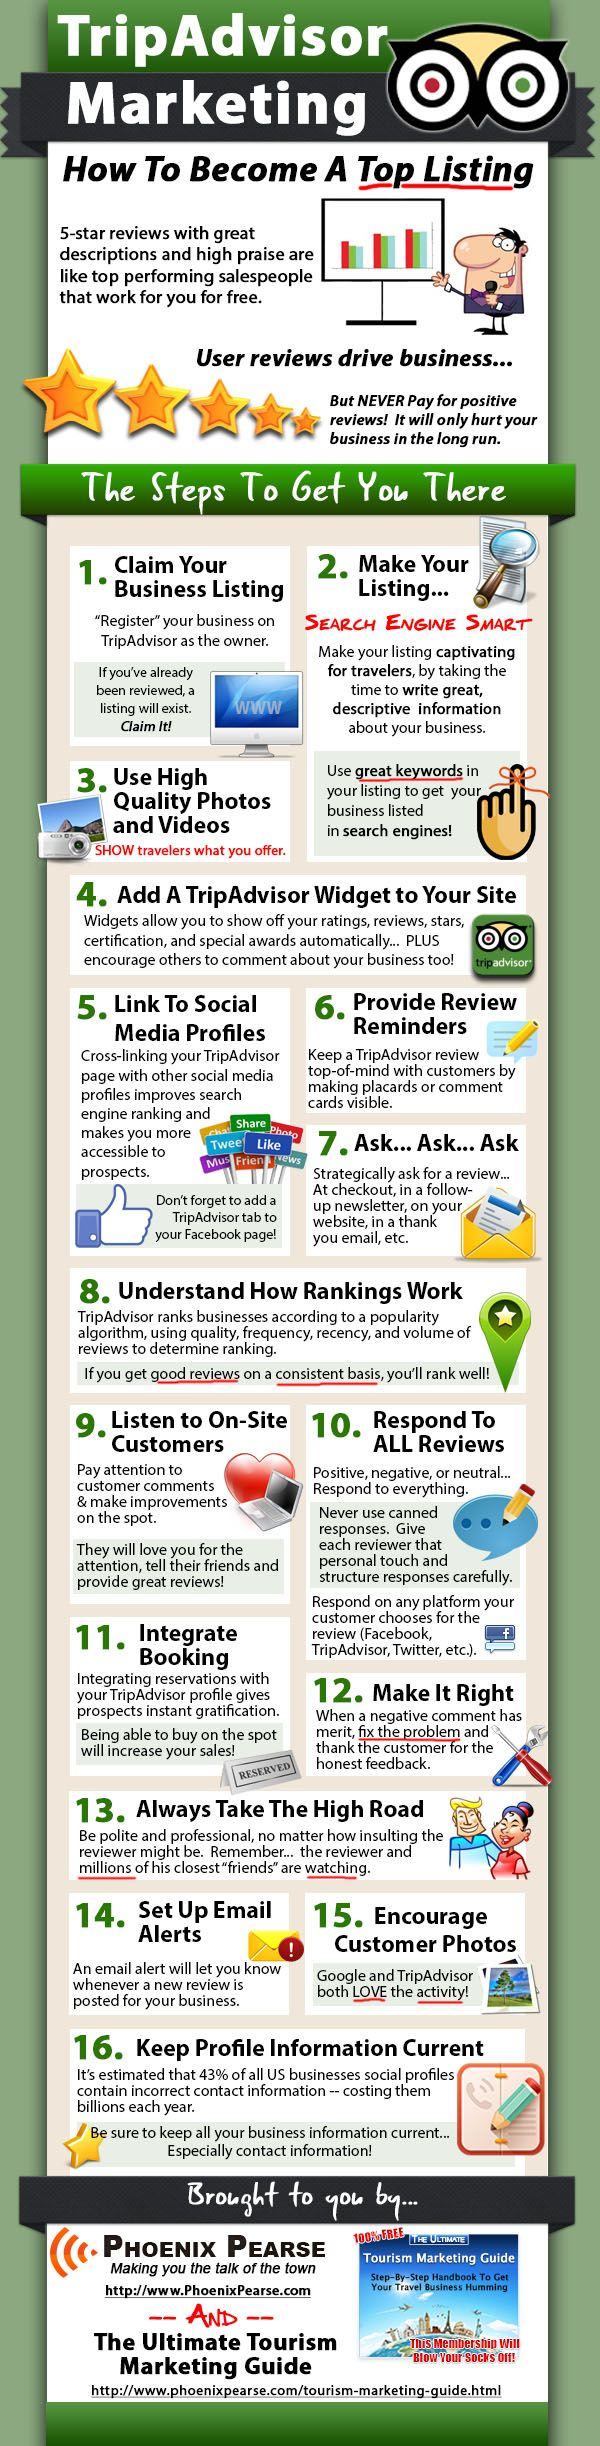 TripAdvisor marketing infographic